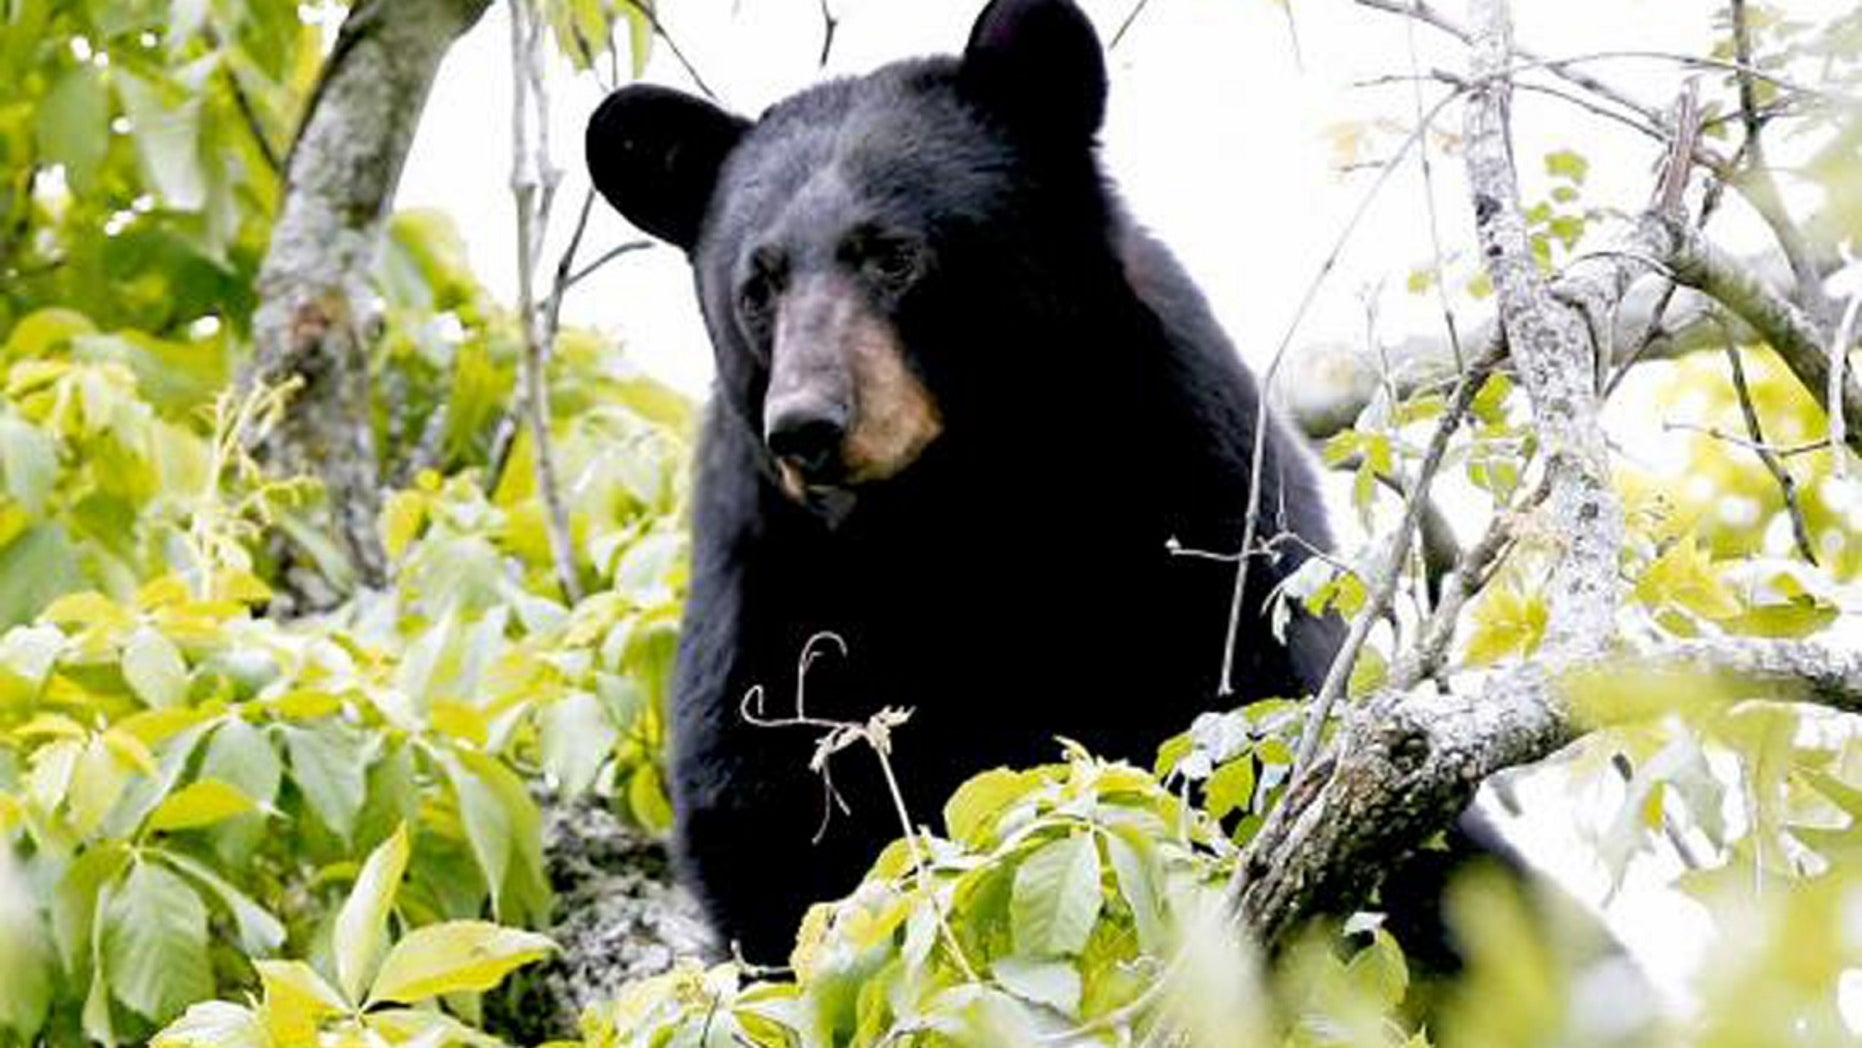 A bear tried to get into an Avon, Connecticut, home last week where a woman had been making brownies.